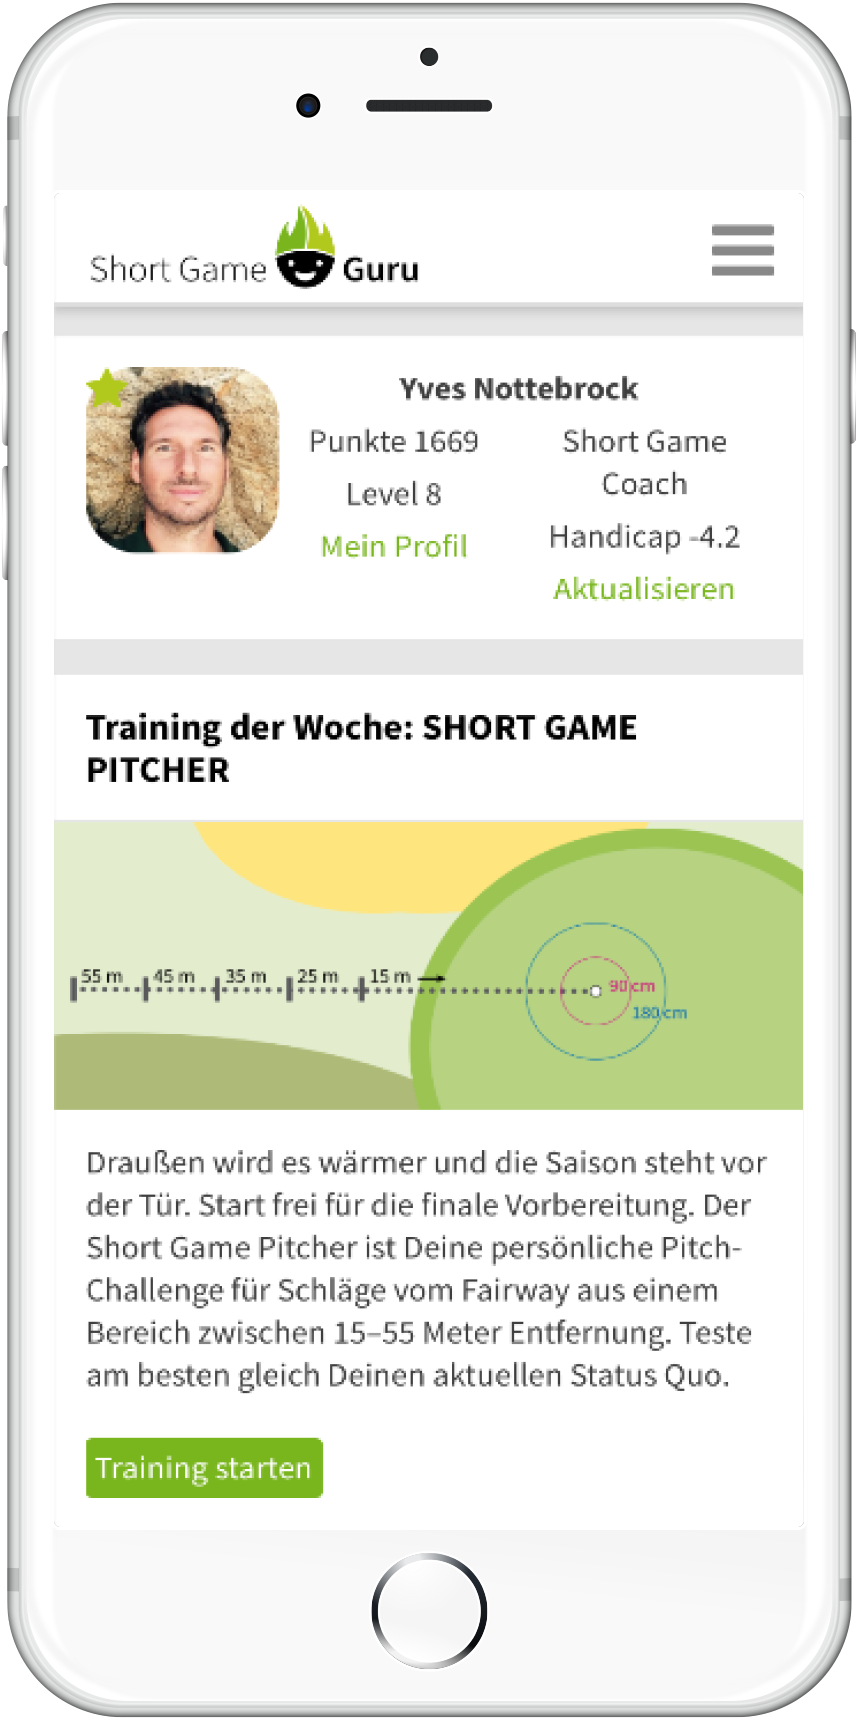 Short Game Guru Start-Screen